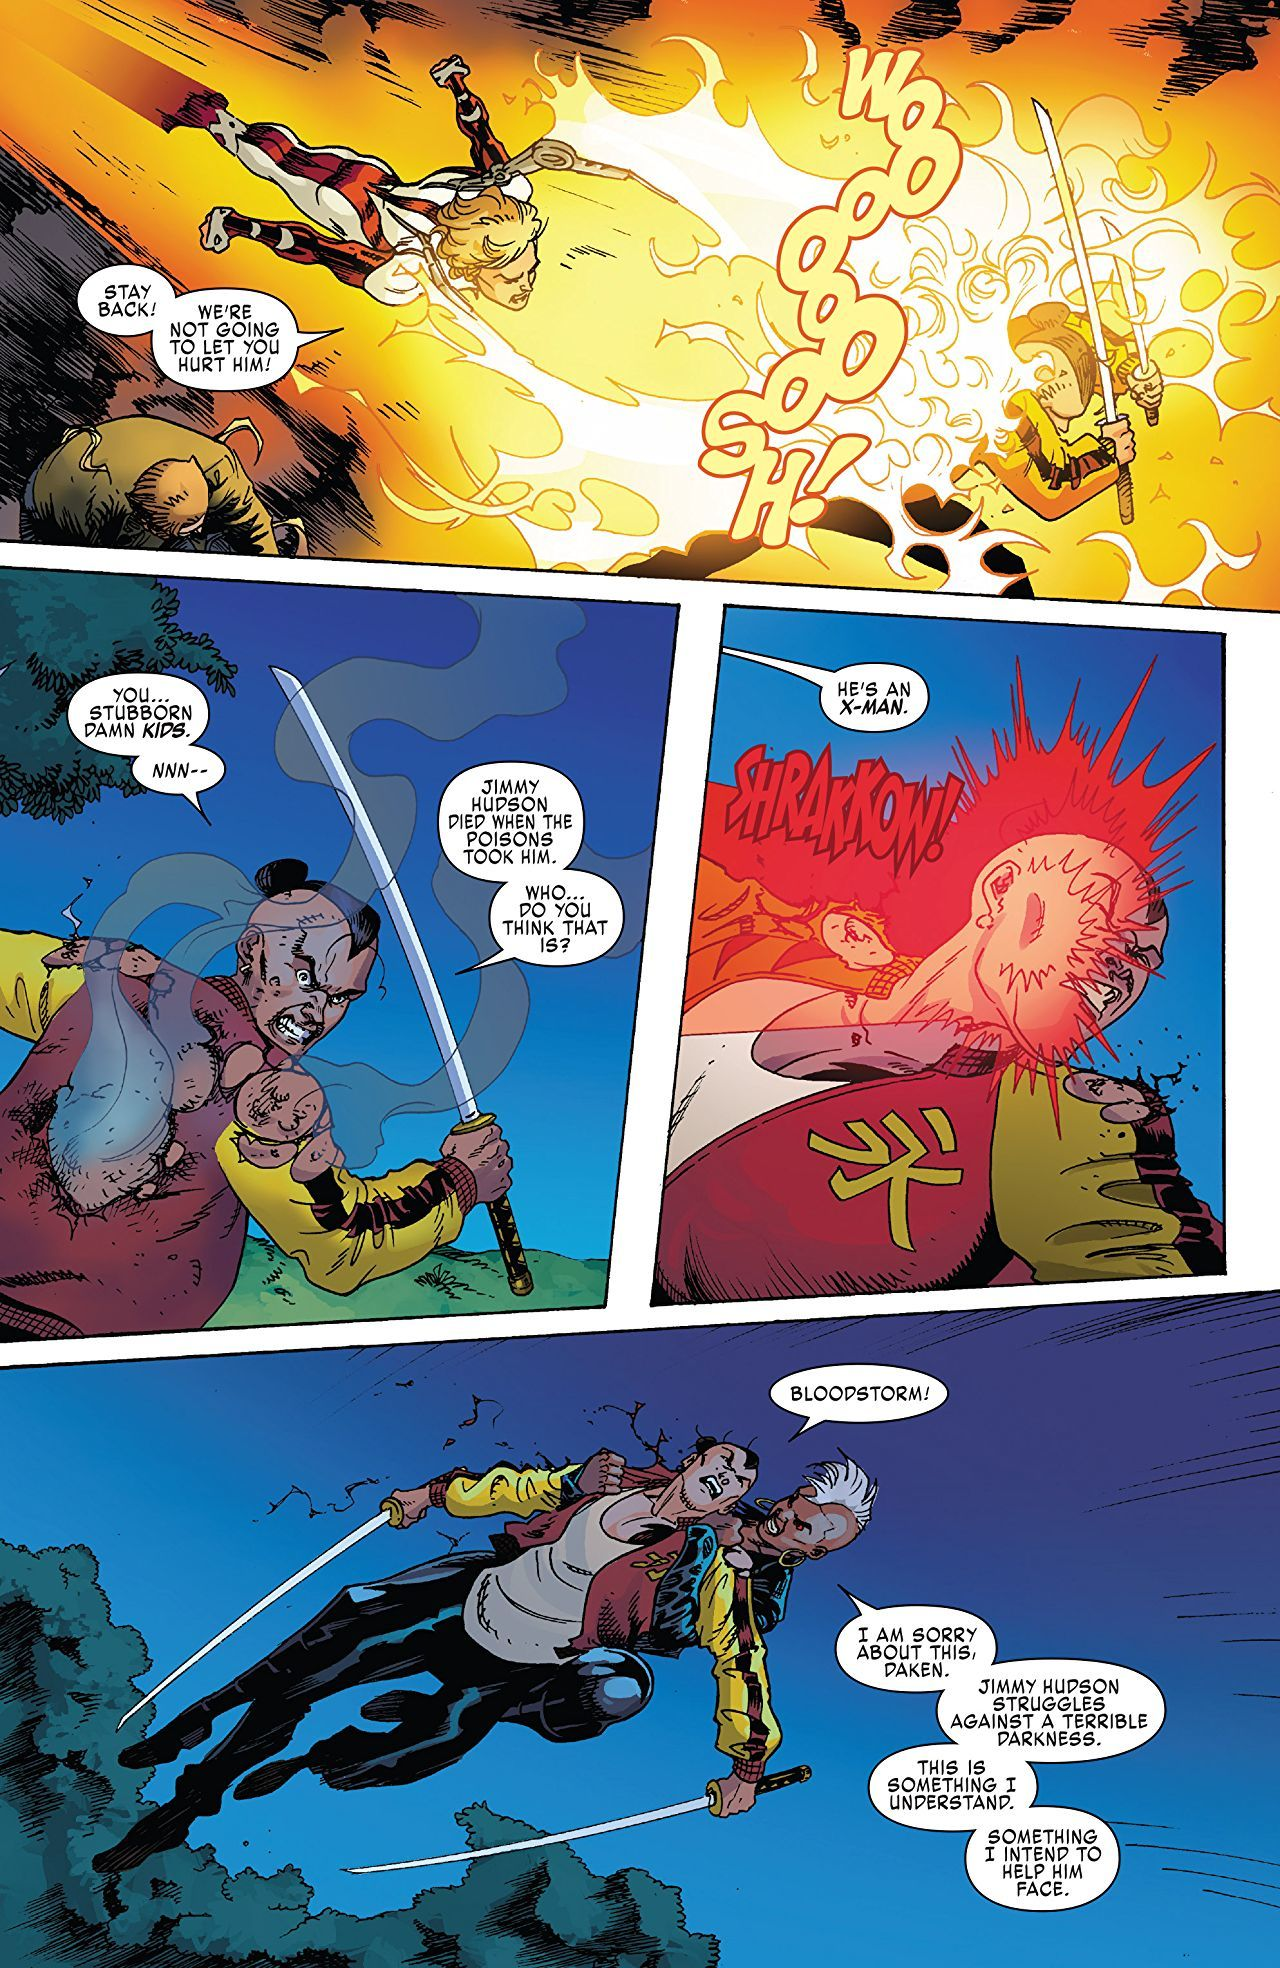 X-Men: Blue #30 art by Nathan Stockman and Matt Milla